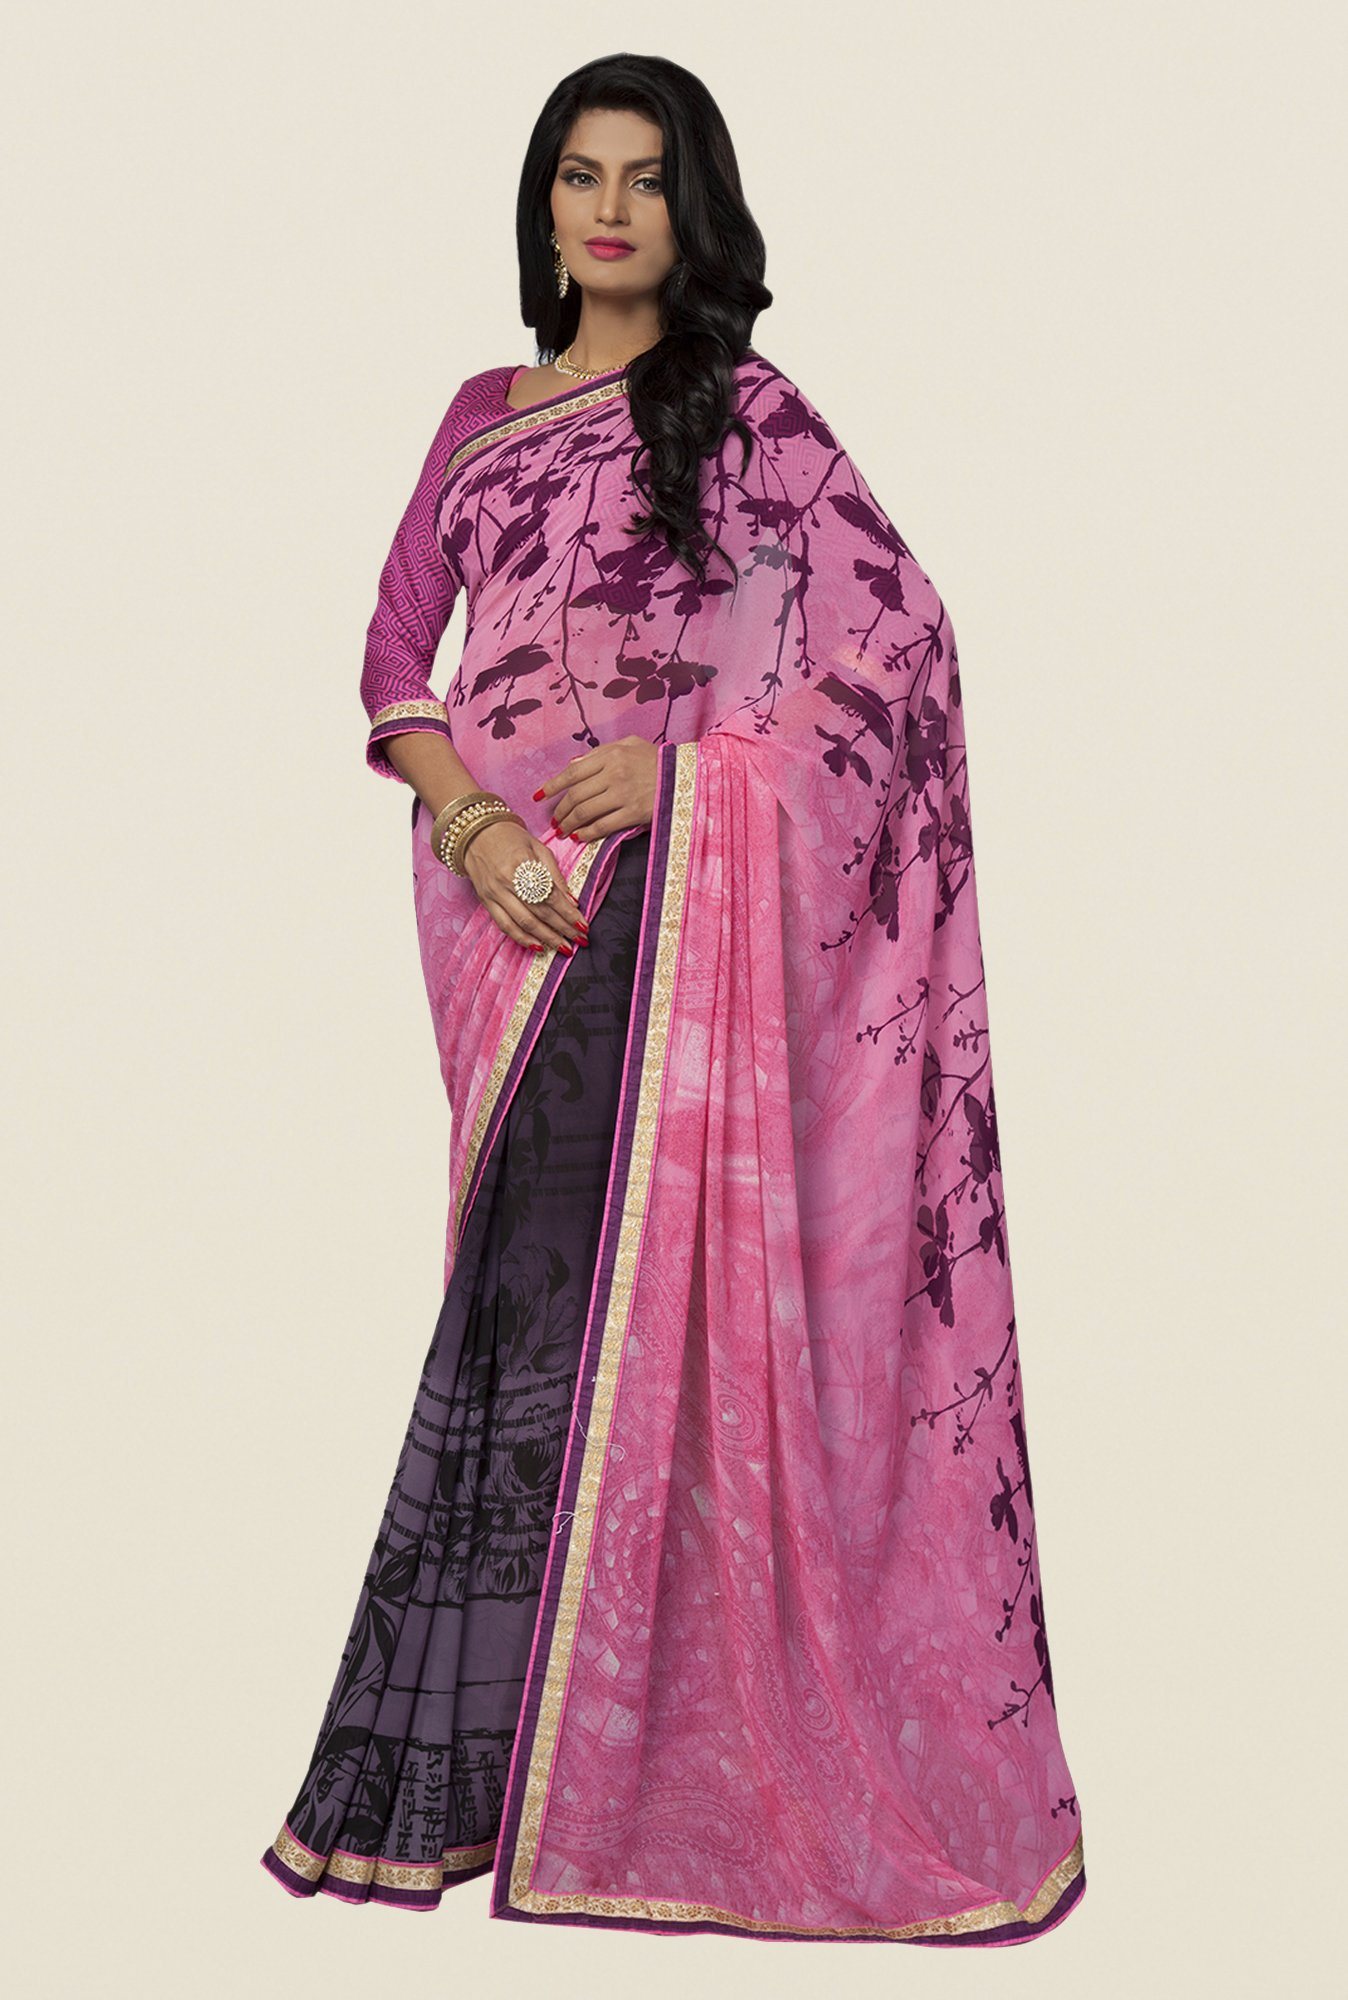 Ishin Purple & Pink Faux Georgette Printed Saree